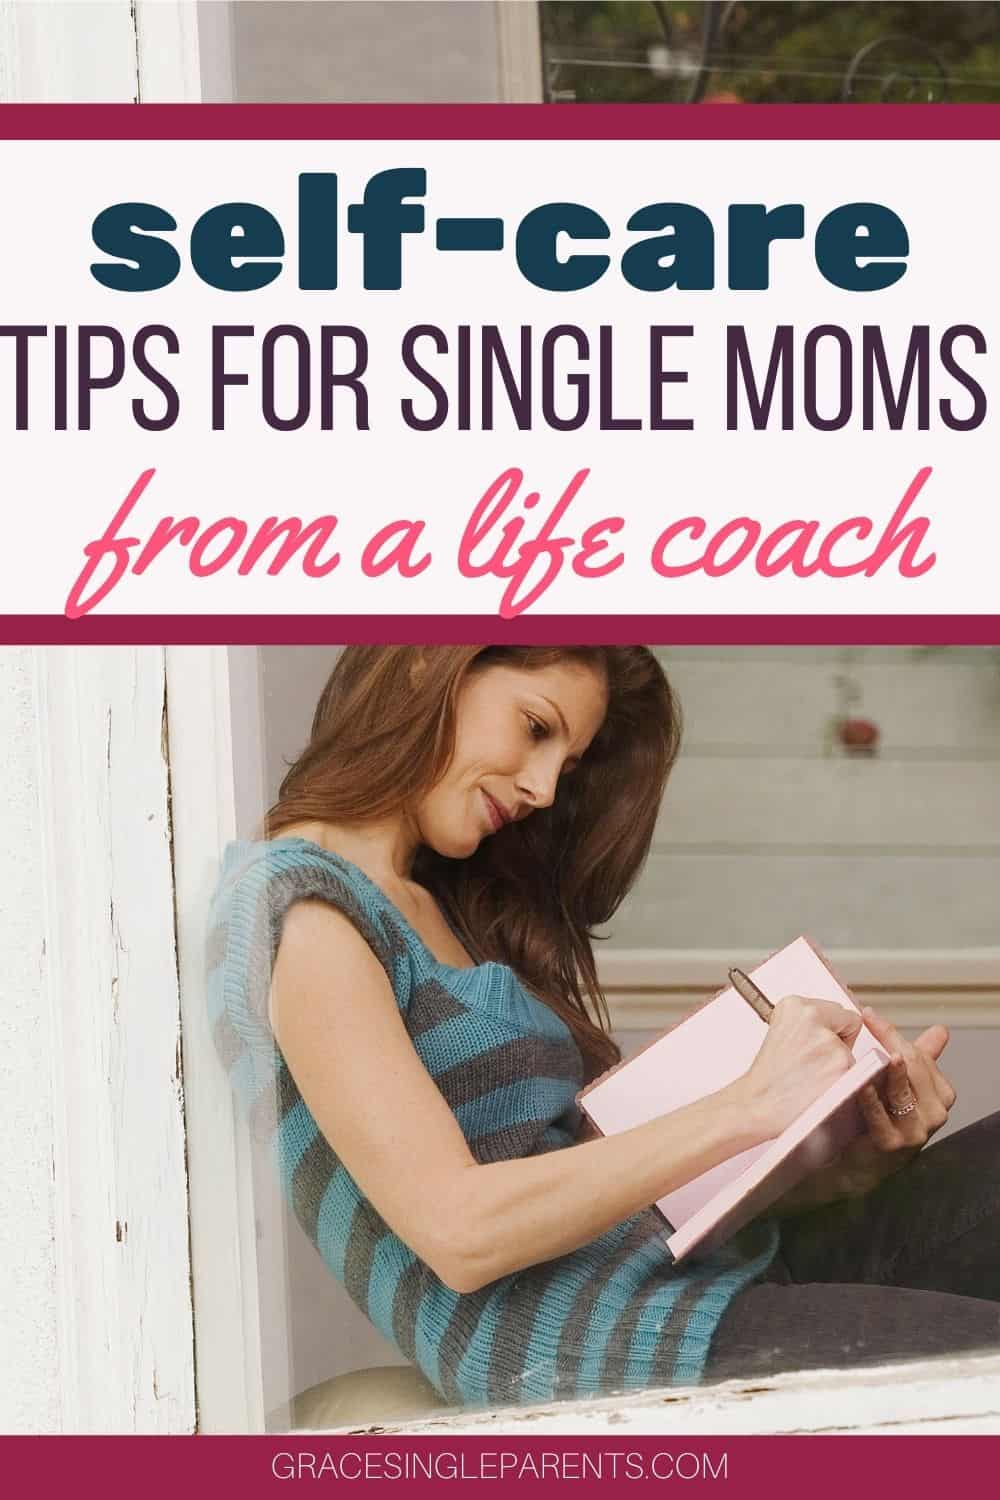 Self-Care Tips for Single Moms from a Certified Life Coach